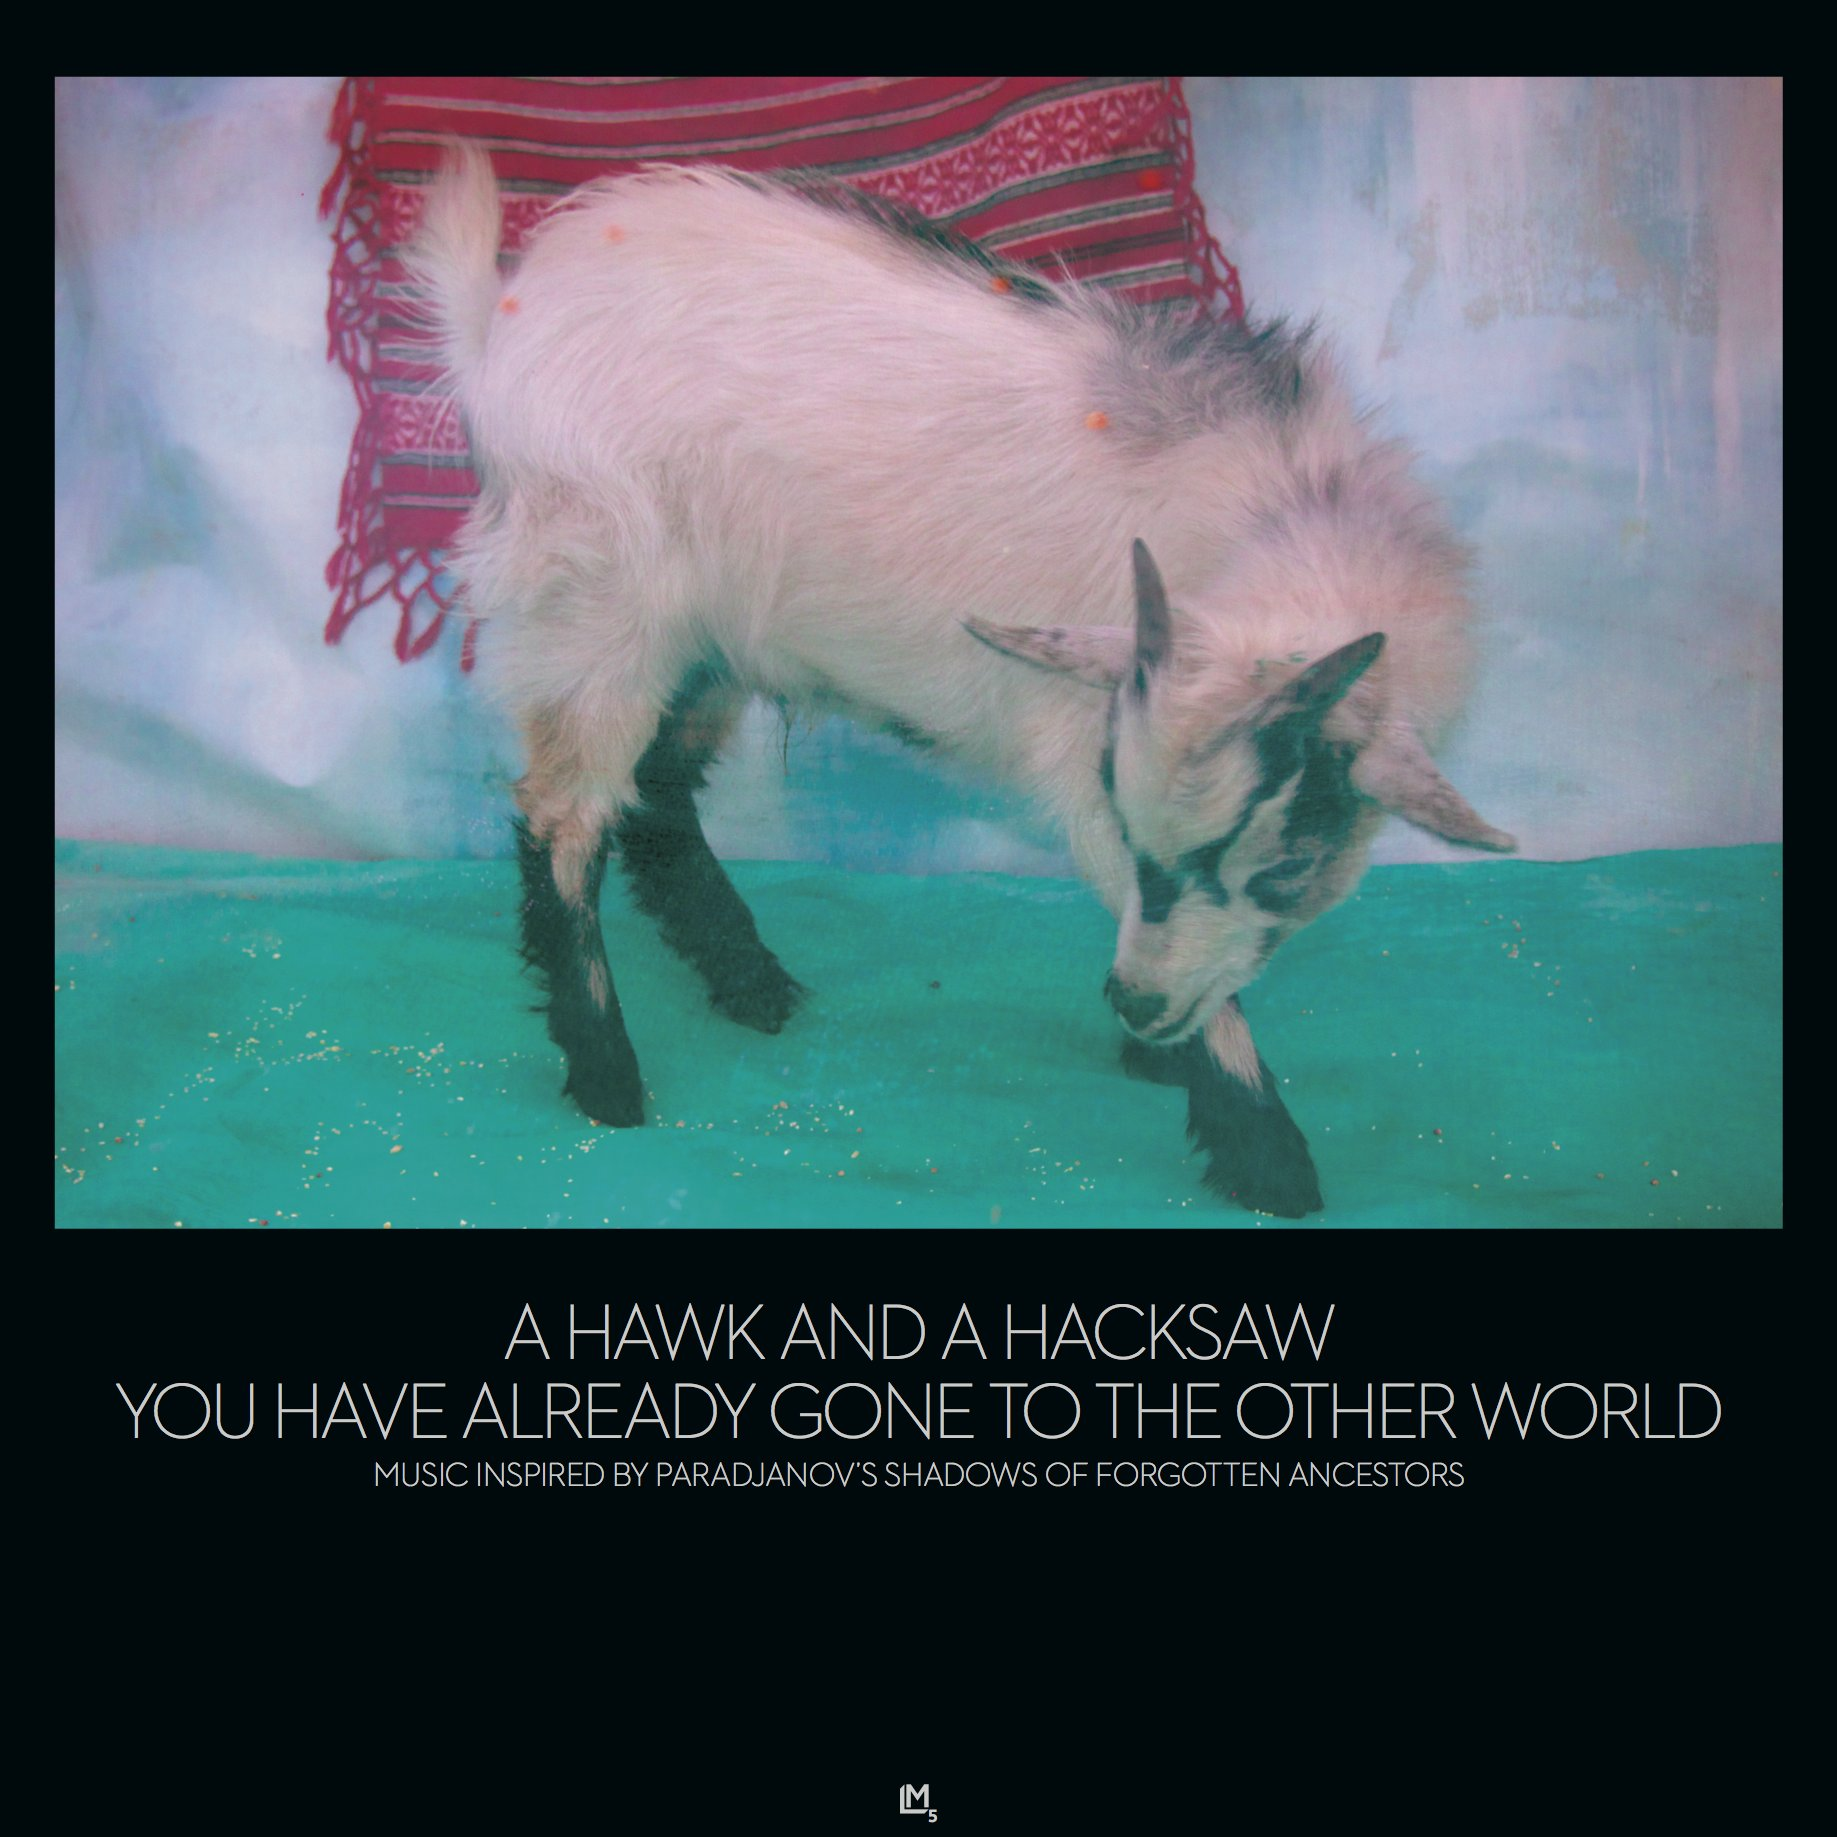 A Hawk and a Hacksaw - You Have Already Gone to the Other World album art